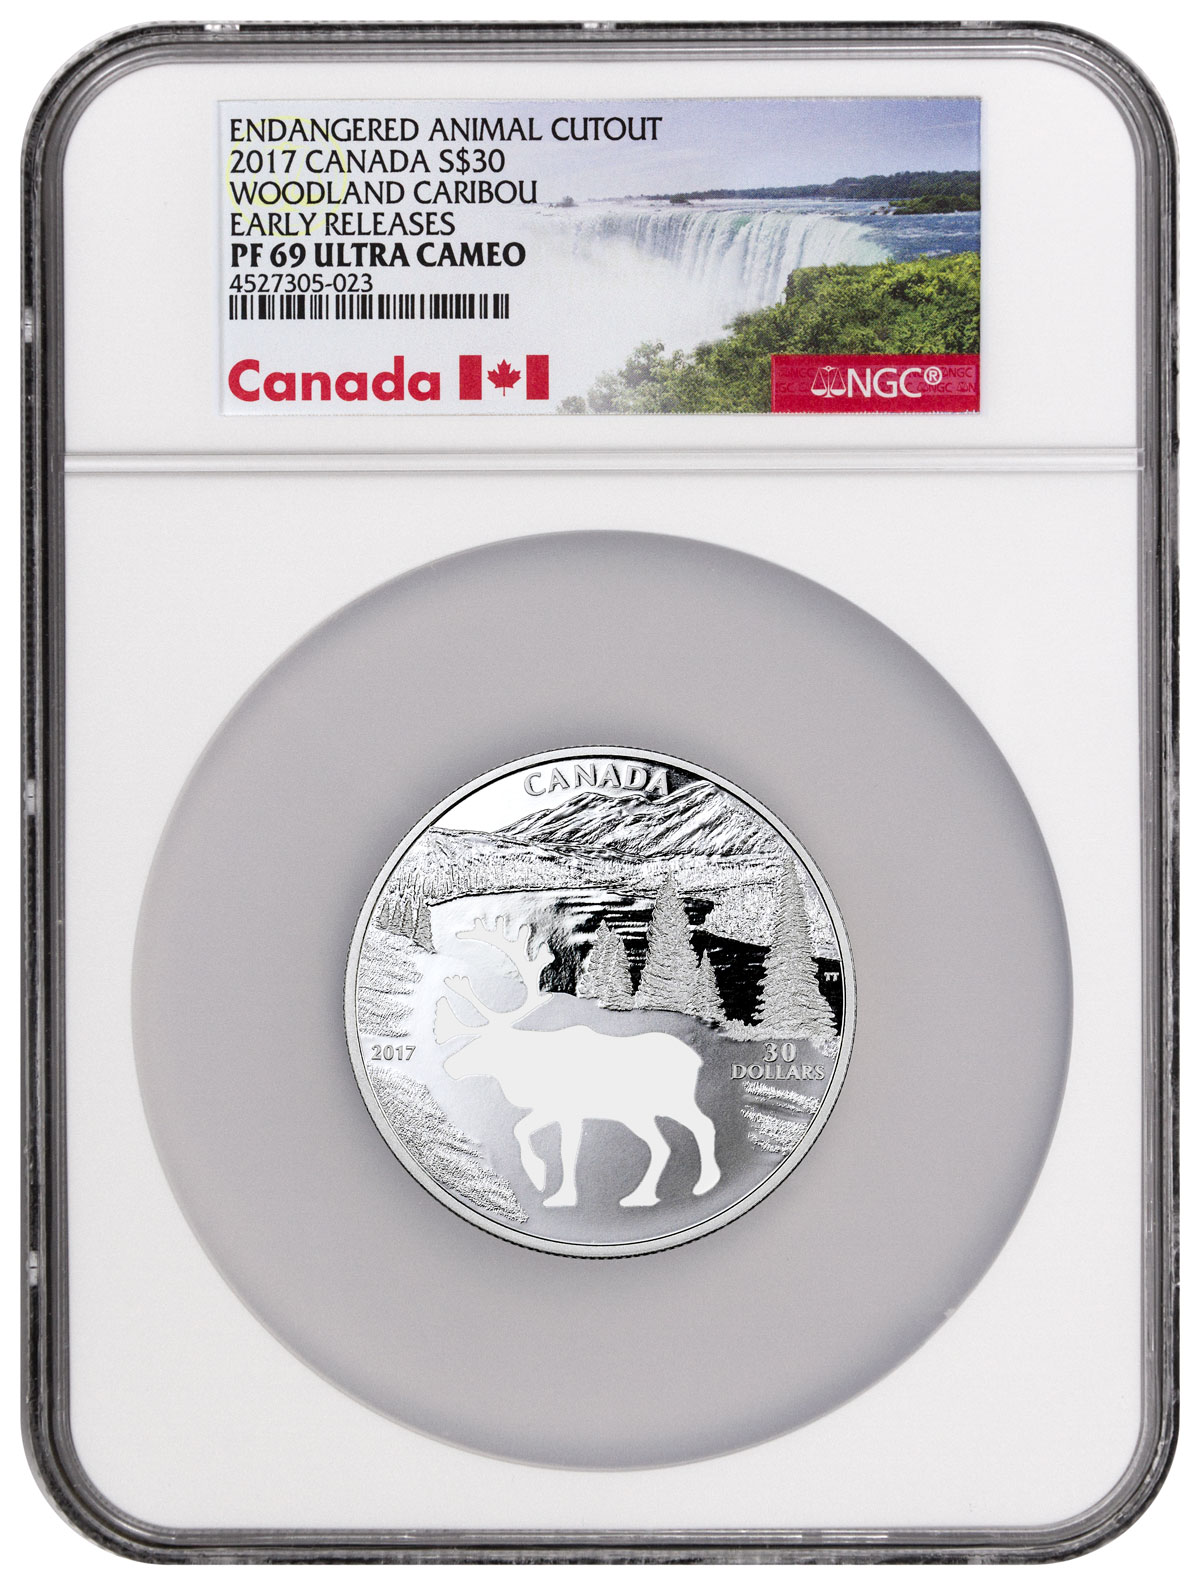 2017 Canada Endangered Animal Cutout - Woodland Caribou 1.7 oz Silver Proof $30 Coin NGC PF69 UC ER (Exclusive Canada Label)